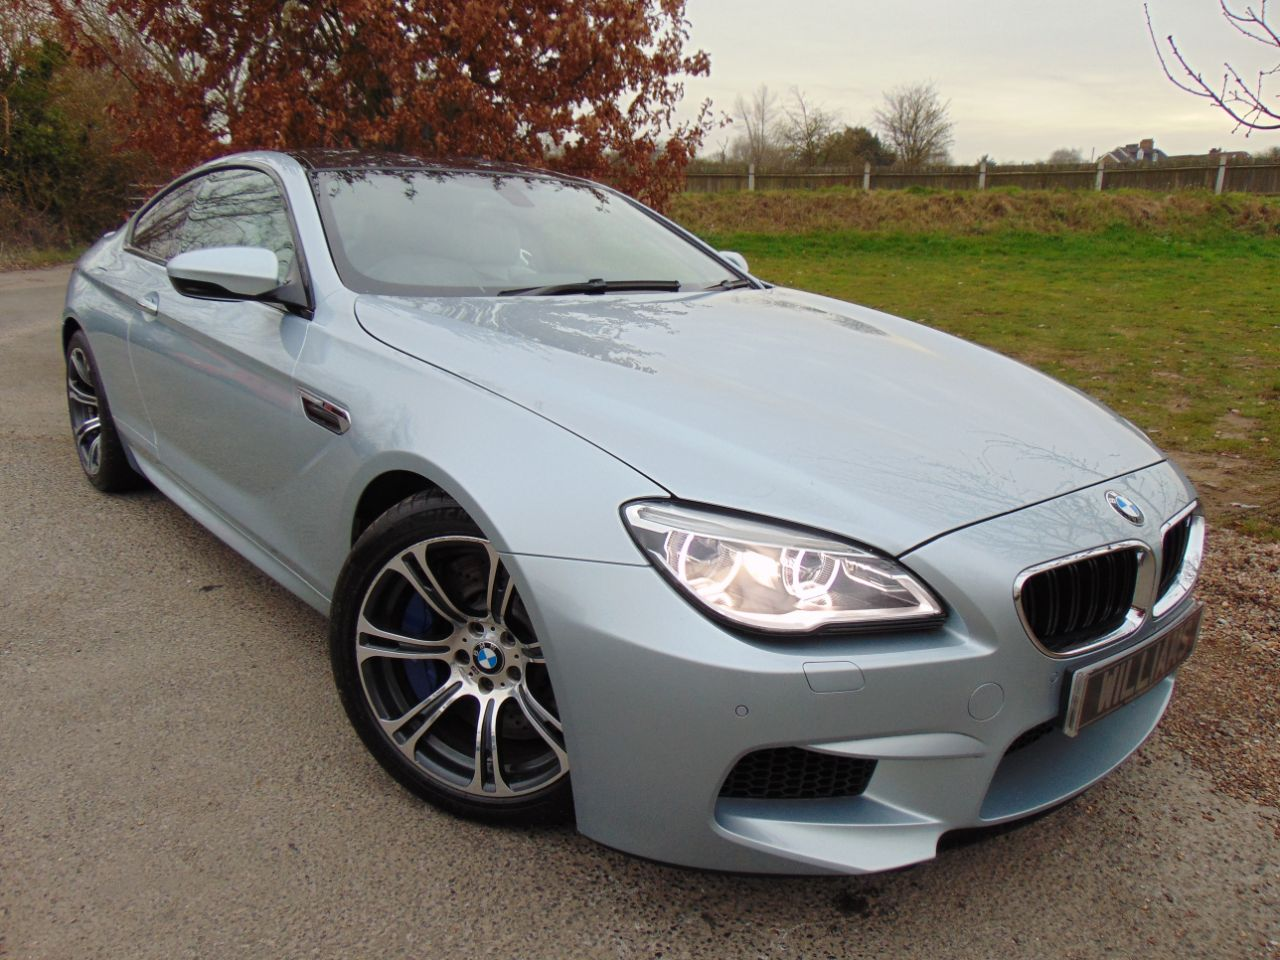 Bmw M6 4.4 M6 2dr Dct (led Headlights! Harman Kardon! ++)